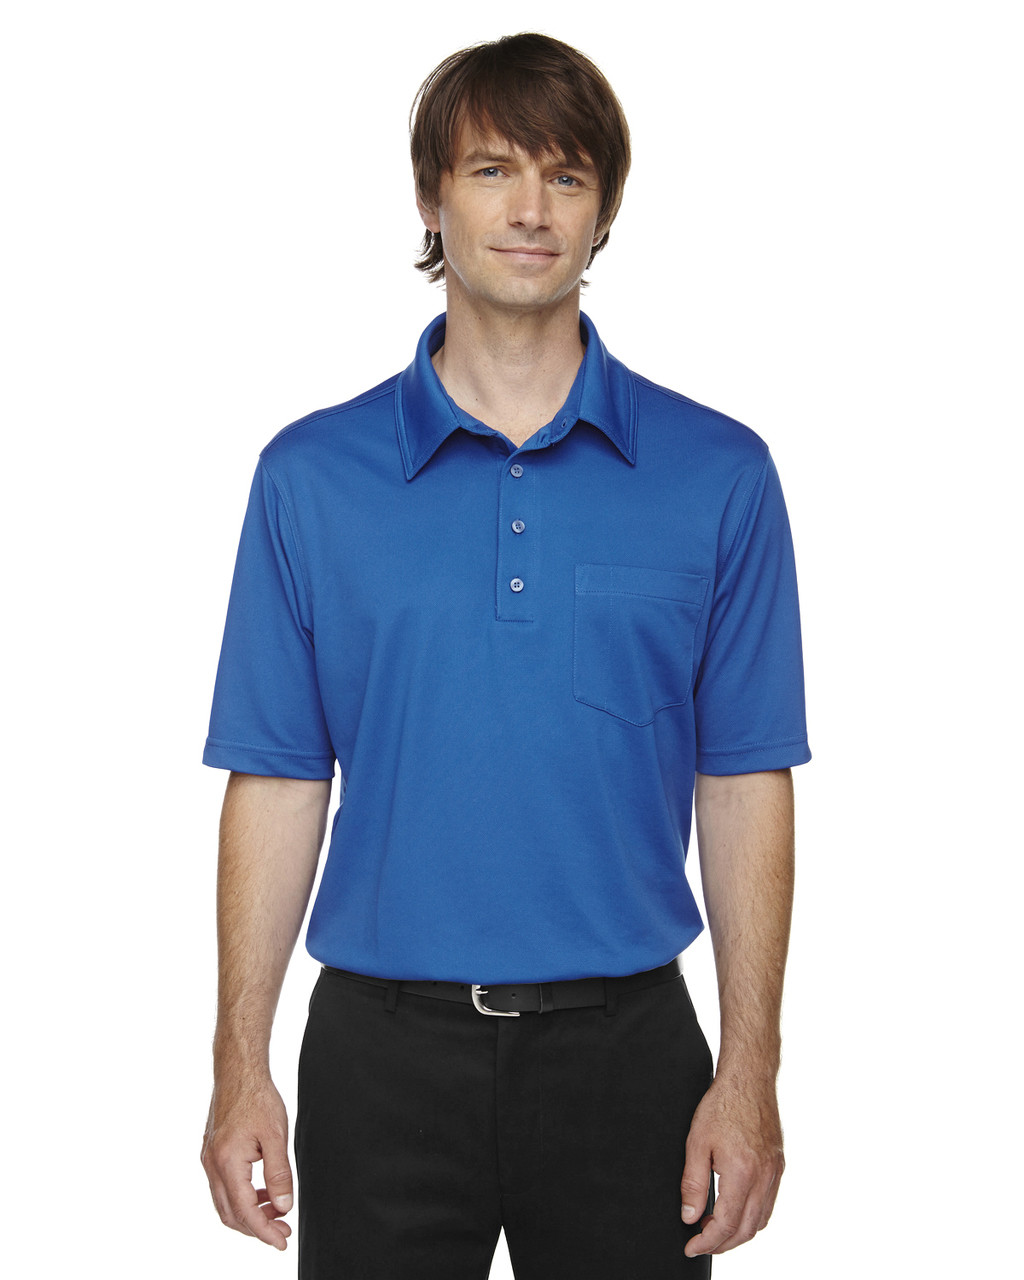 True Royal - 85114T Ash City - Extreme Eperformance Men's Tall Protection Plus Polo Shirt